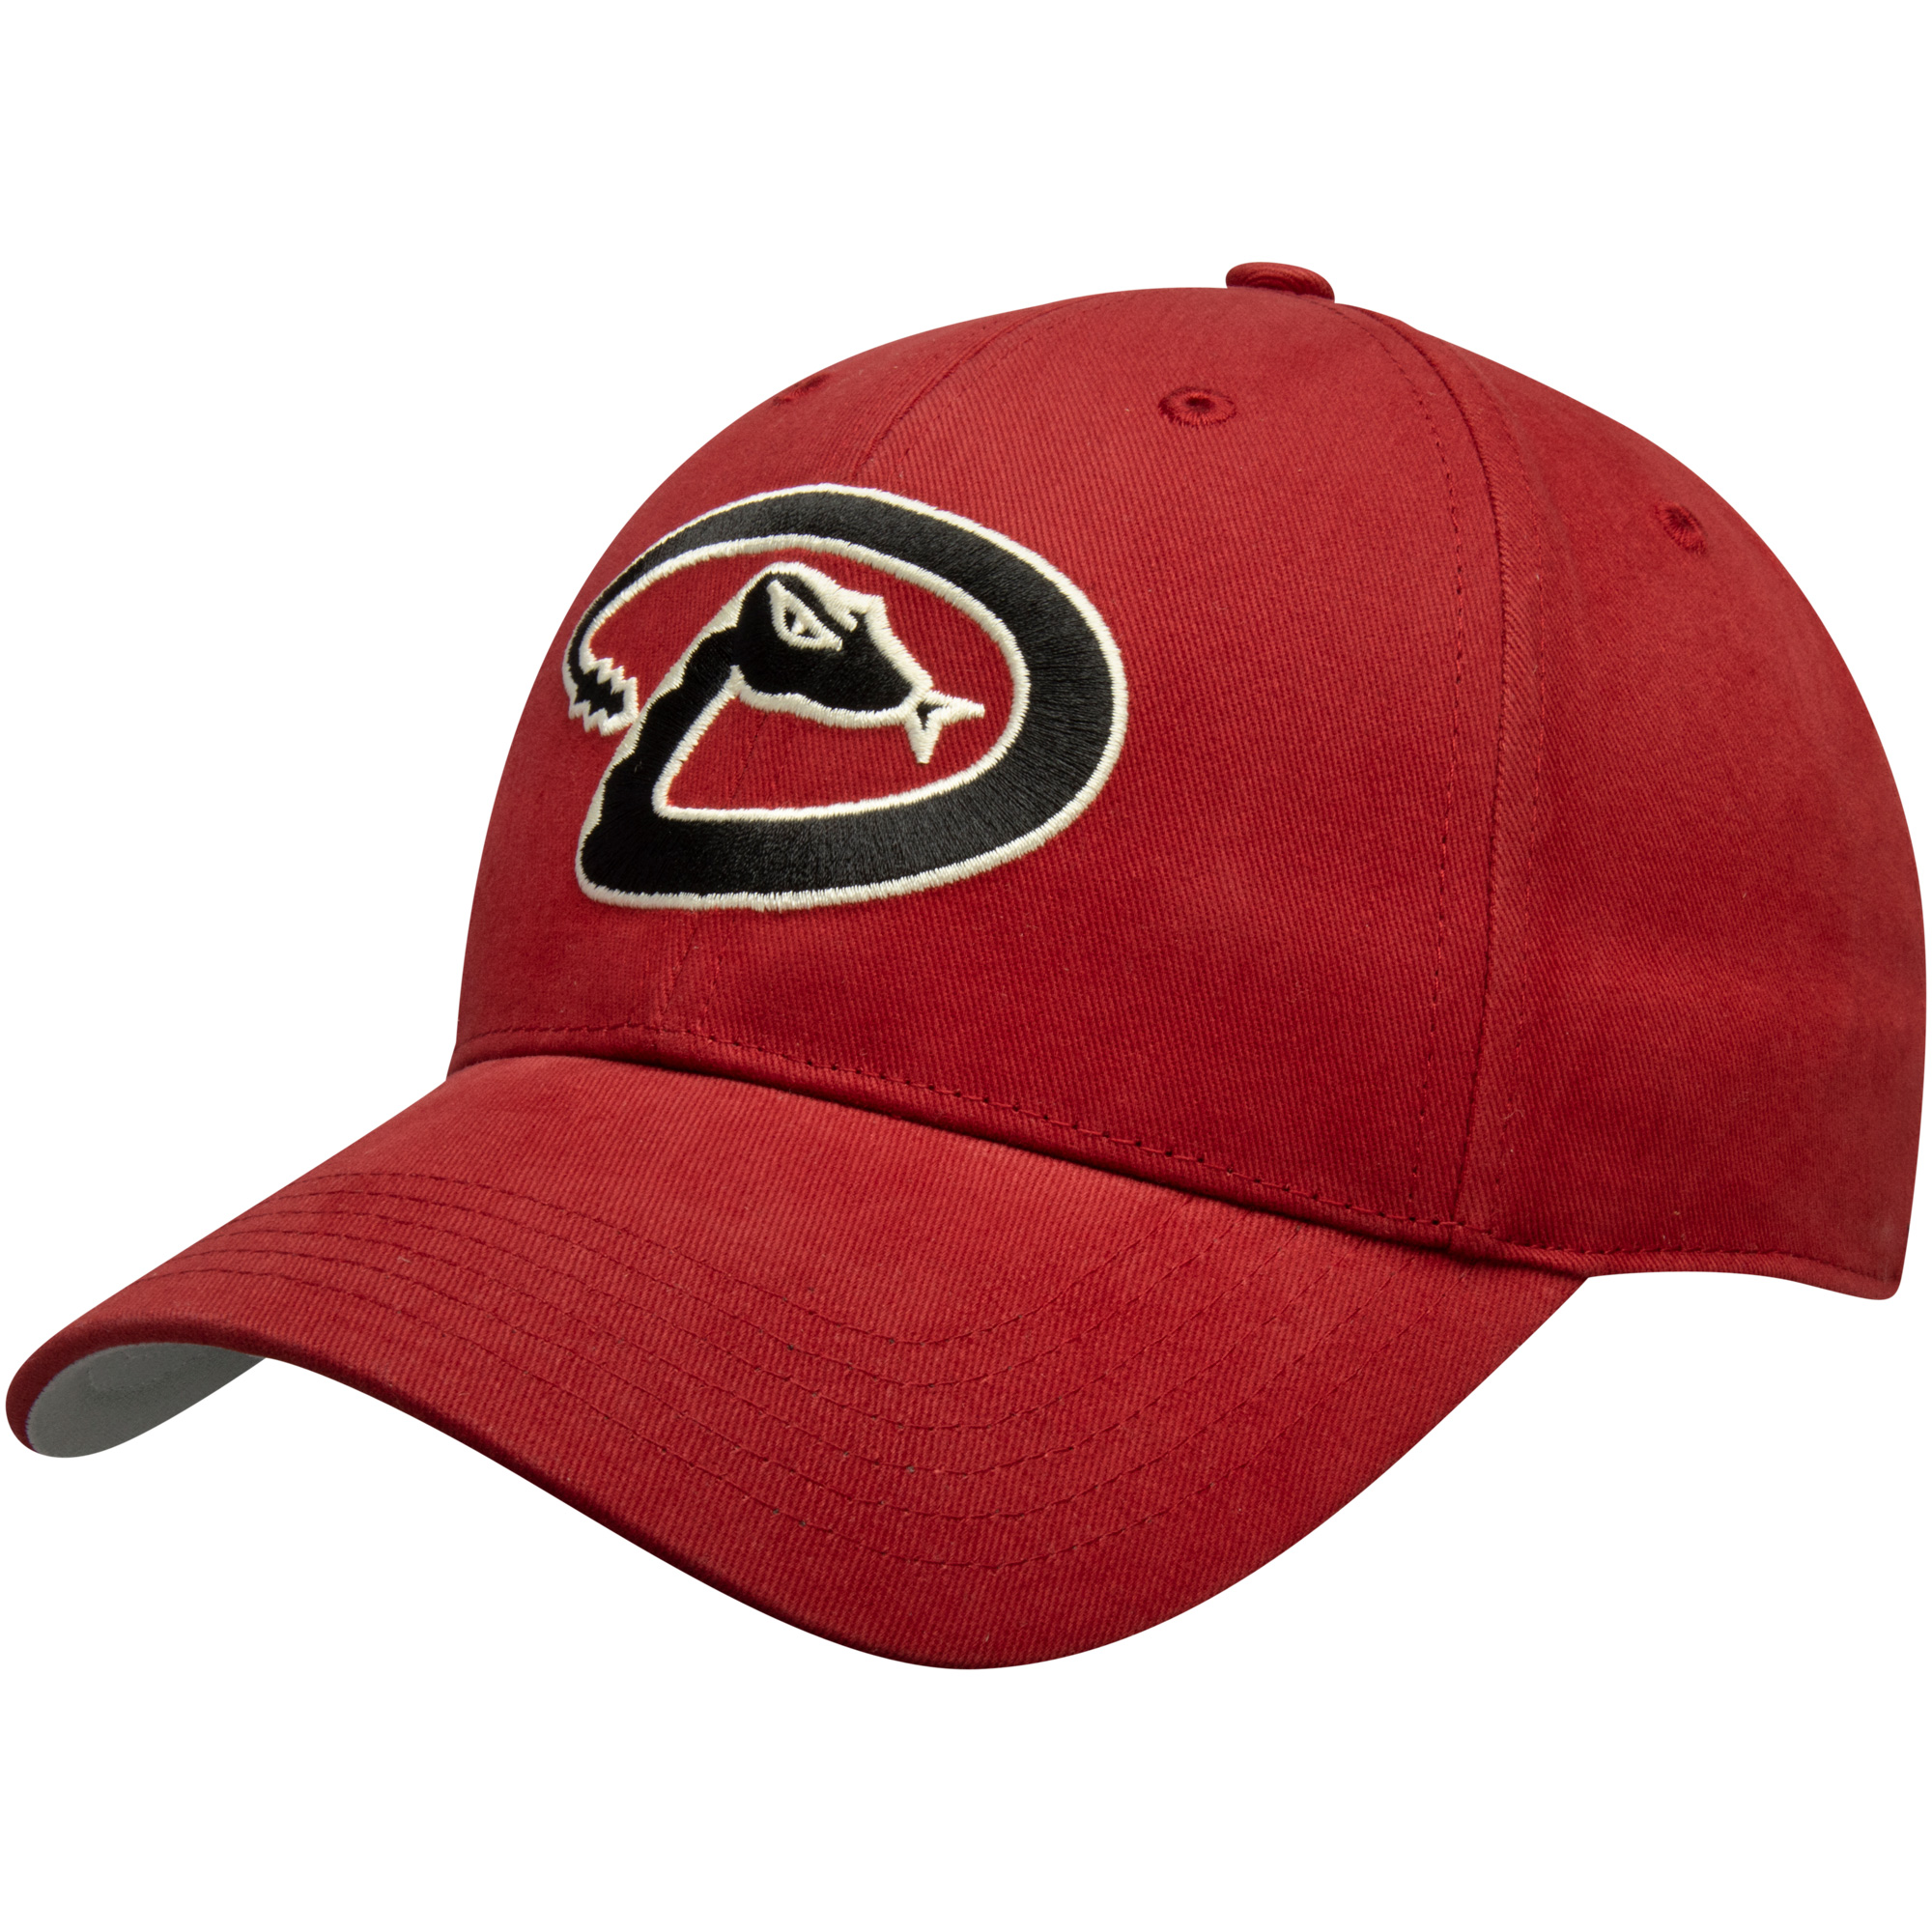 Fan Favorite Arizona Diamondbacks '47 Basic Adjustable Hat - Red - OSFA